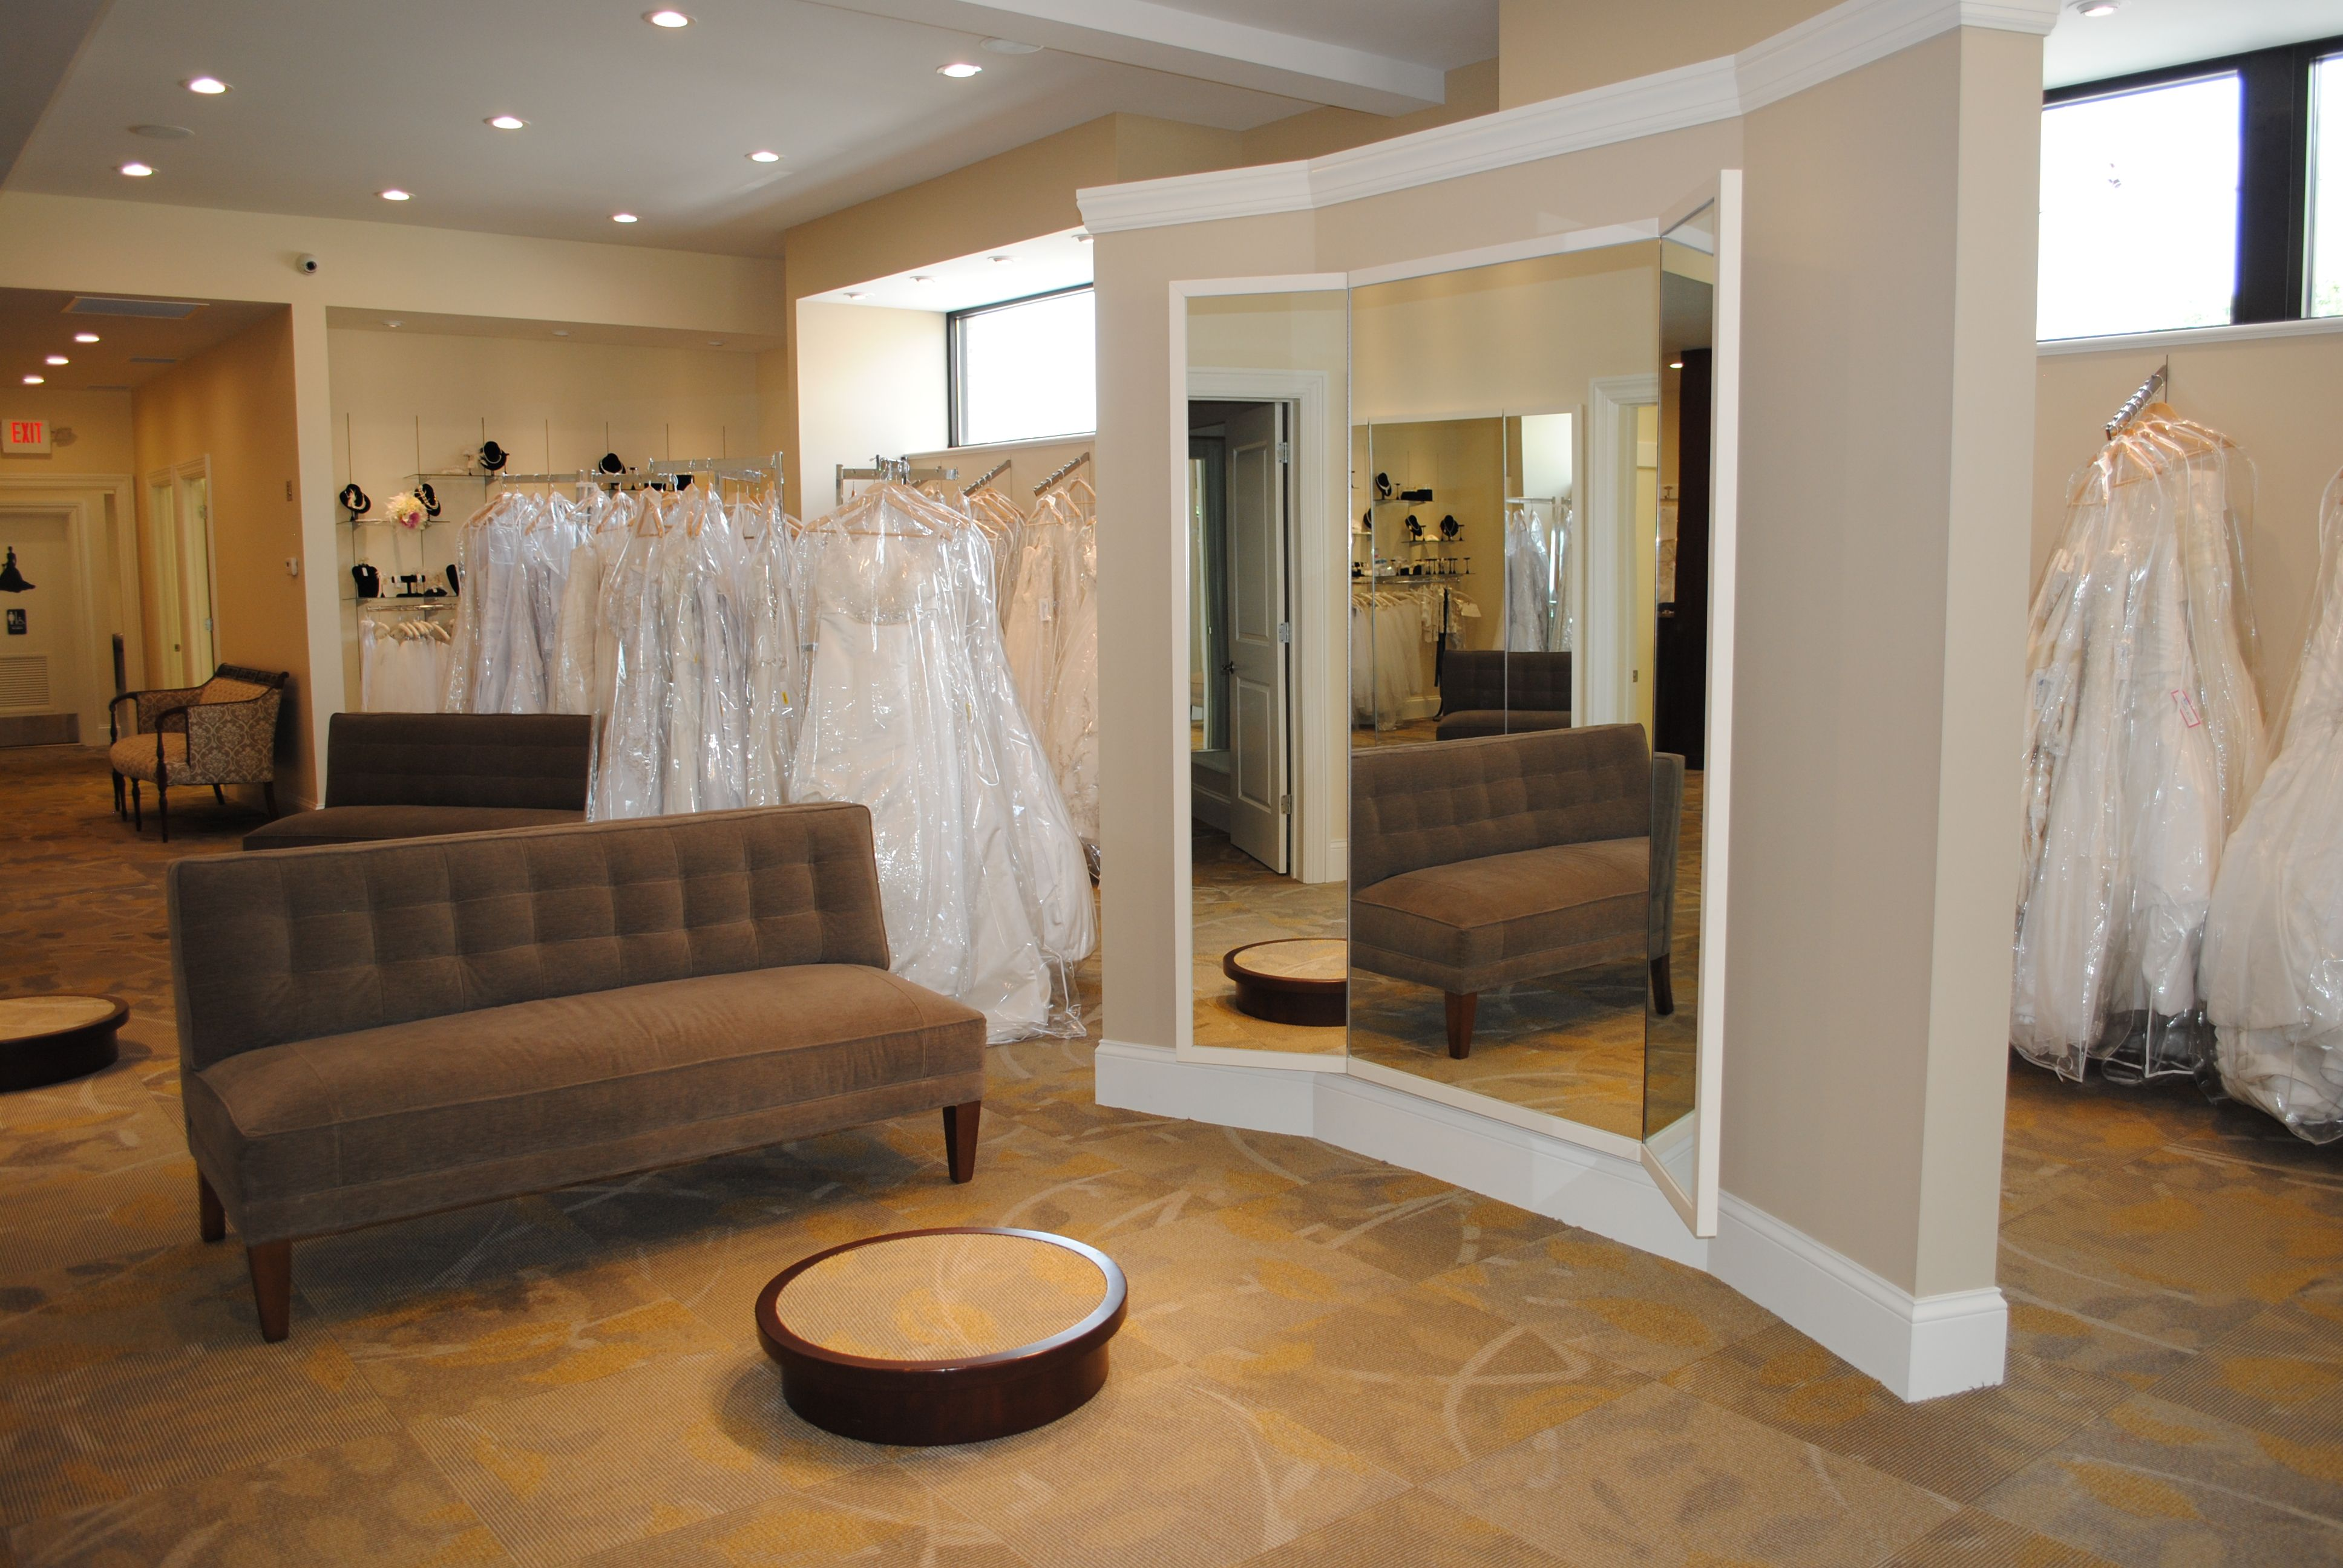 Dressing Rooms Bridal Store Dressing Room  Google Search  Bridal Boutique